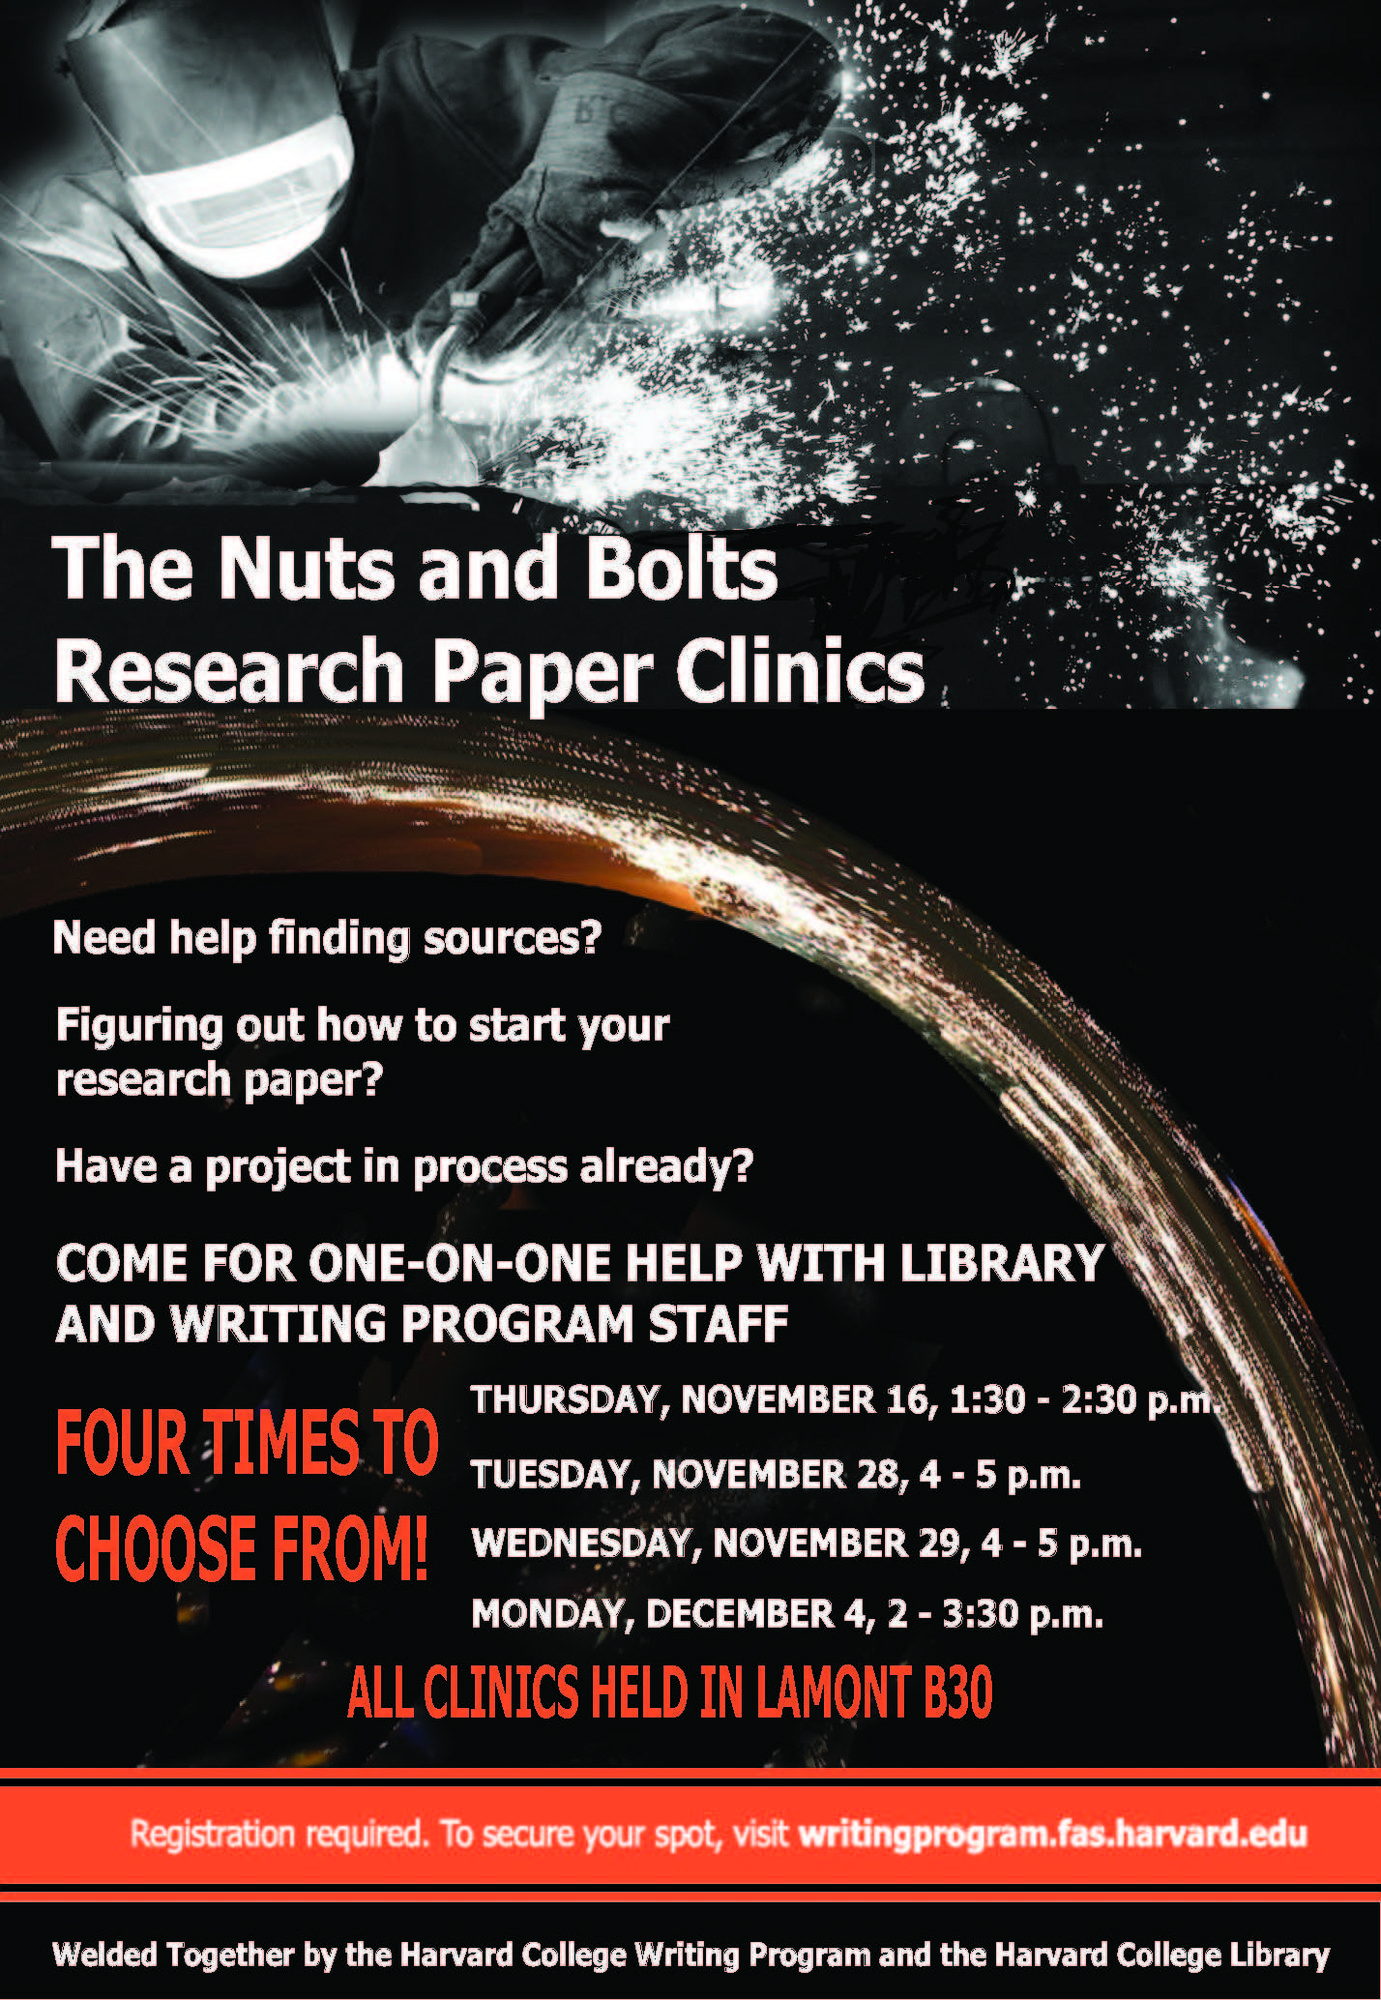 the nuts and bolts research paper clinics harvard college  fall 2017 research clinics